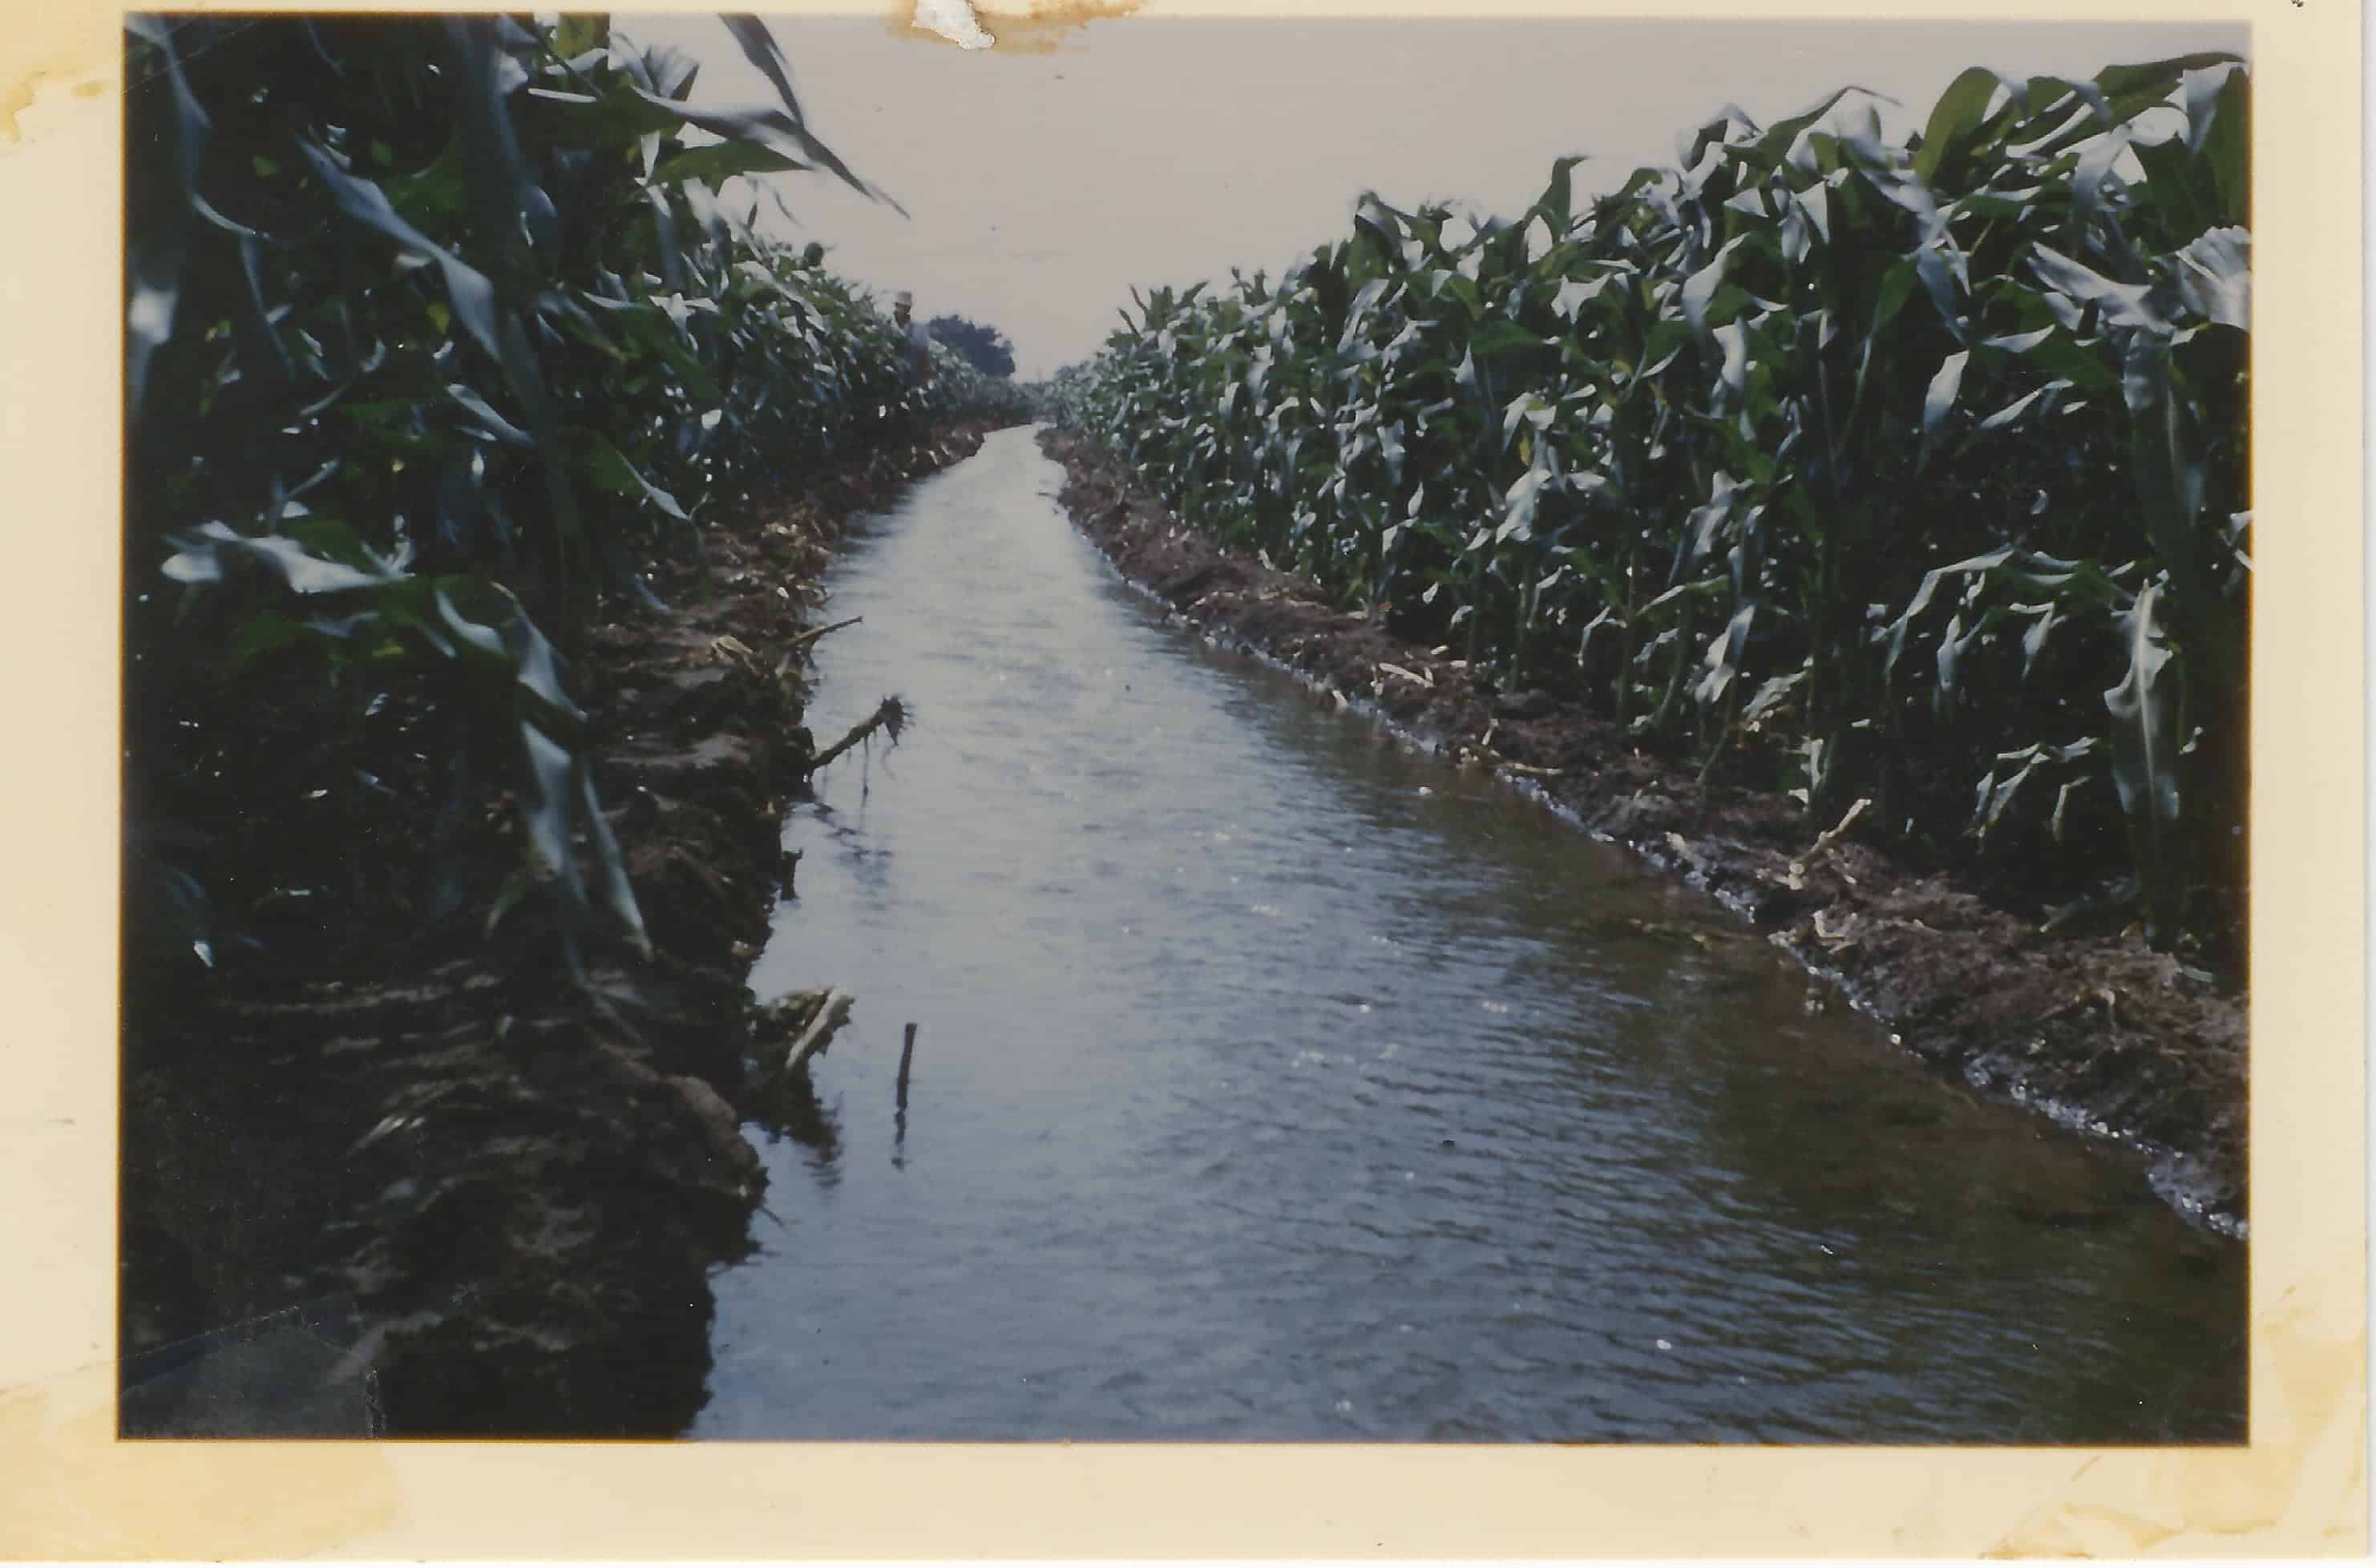 In the mid-1950s, Oswald's father, Ralph, dug a ditch to route ground water to irrigate his corn field.  It's not the first time an American took an innovative approach to raising corn. (Photo provided by Richard Oswald)